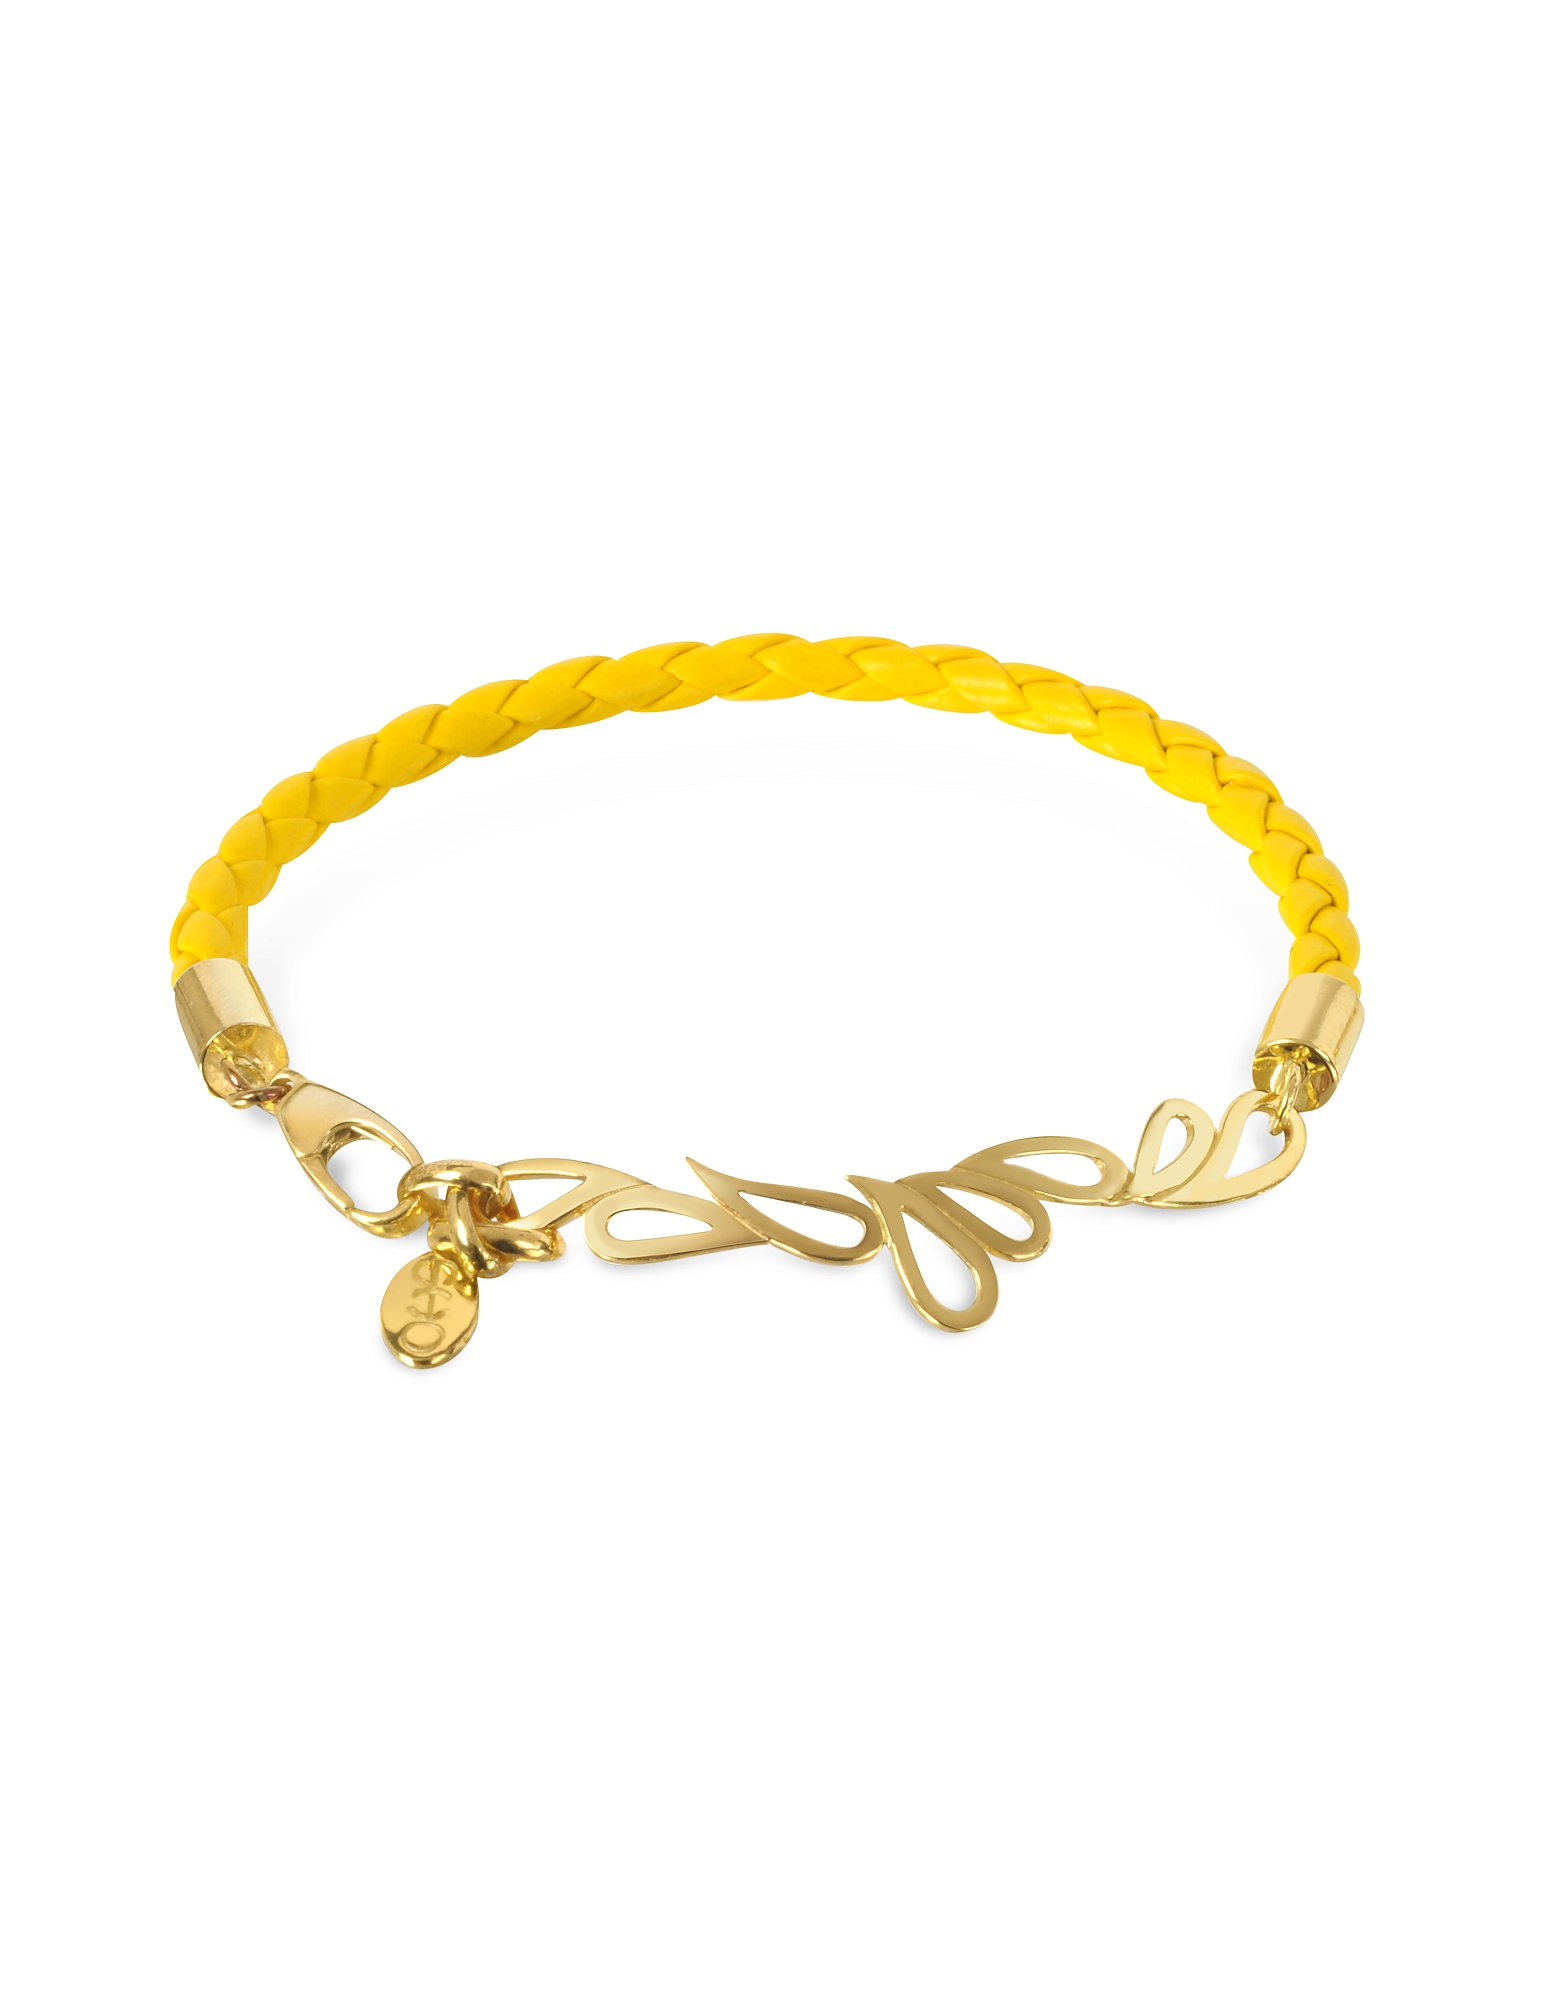 Sho London Bracelets, Mari Fiendship Leather and Silver Vermeil Bangle